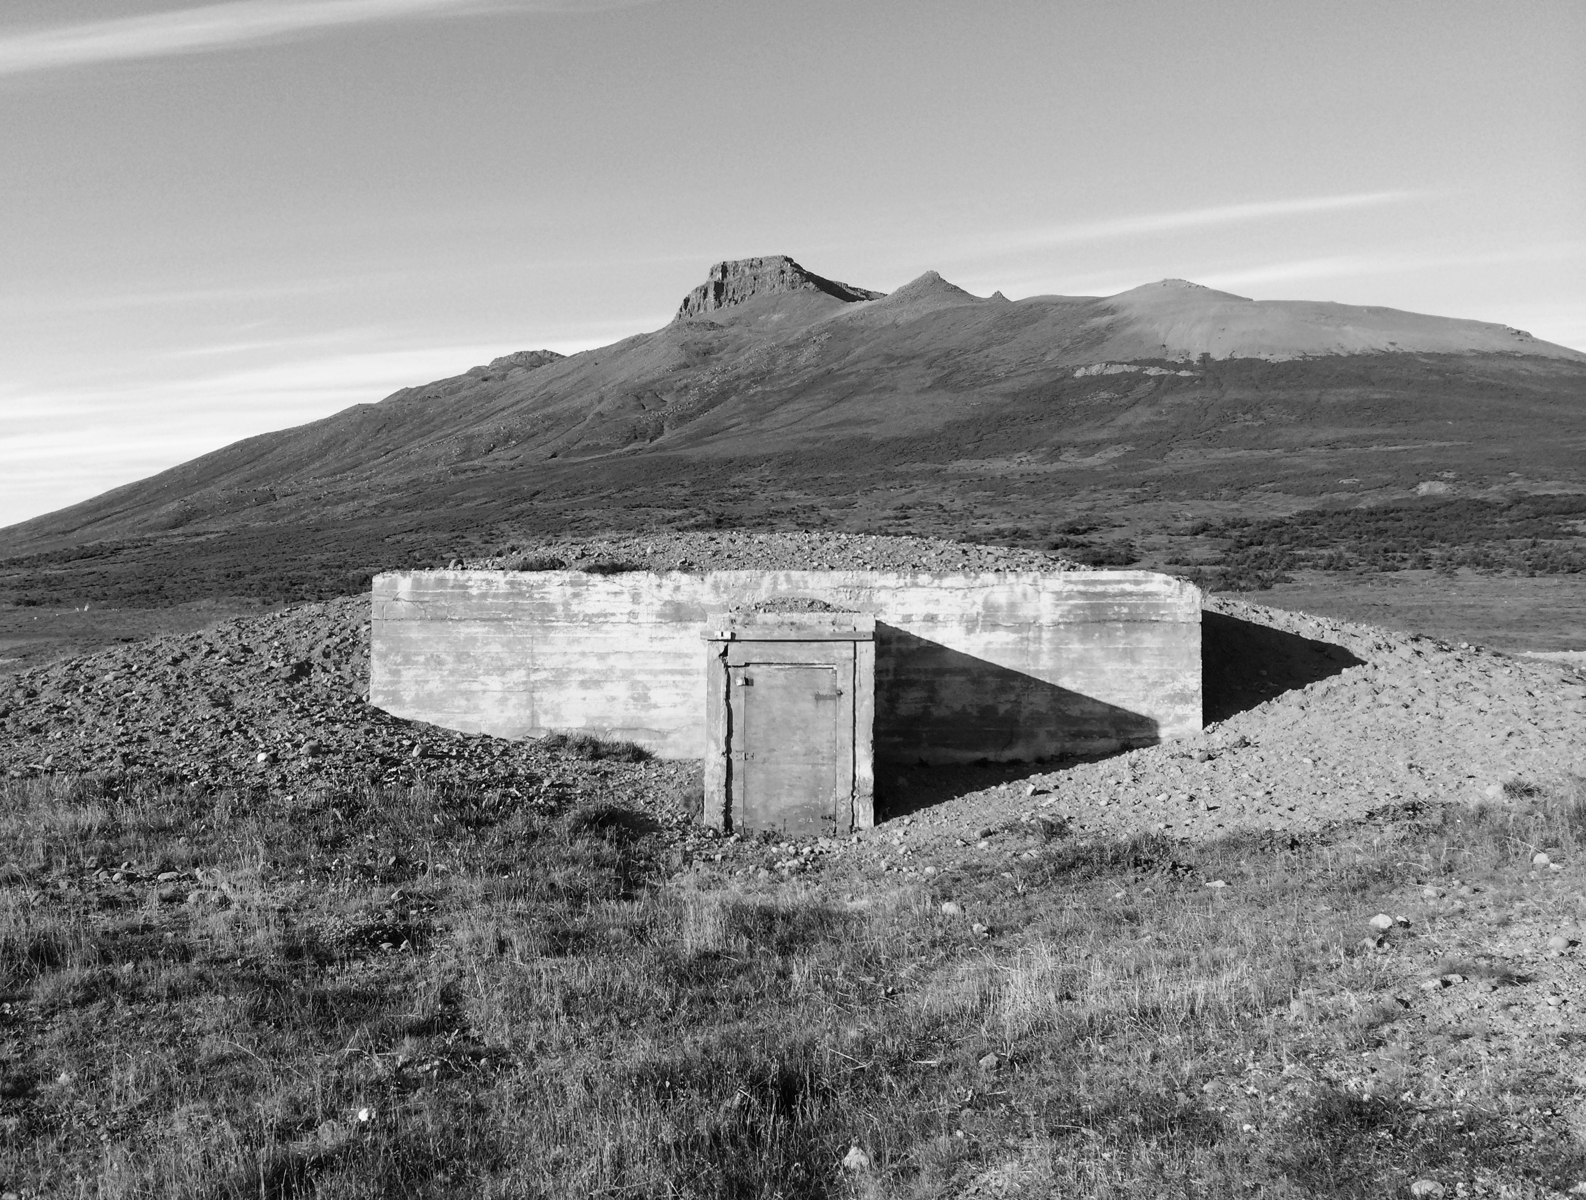 A lone, windowless concrete building, in the background a treeless mountain.